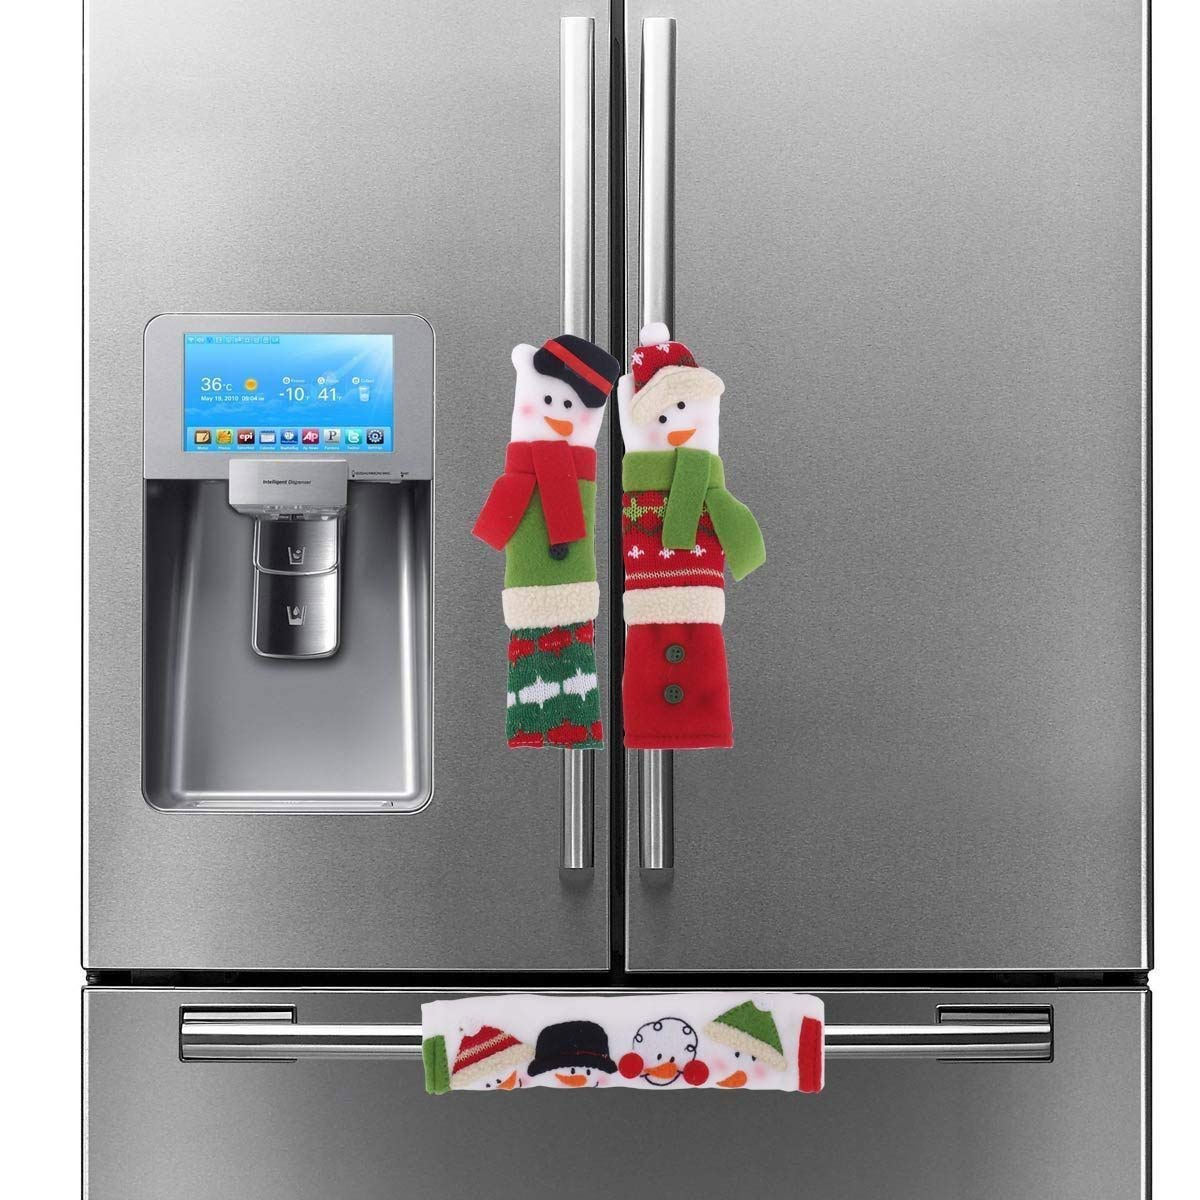 CHICTRY 3Pcs Christmas Snowman Refrigerator Door Handle Covers Kitchen Appliance Handle Protectors for Fridge Microwave Oven Dishwasher Xmas Decoration